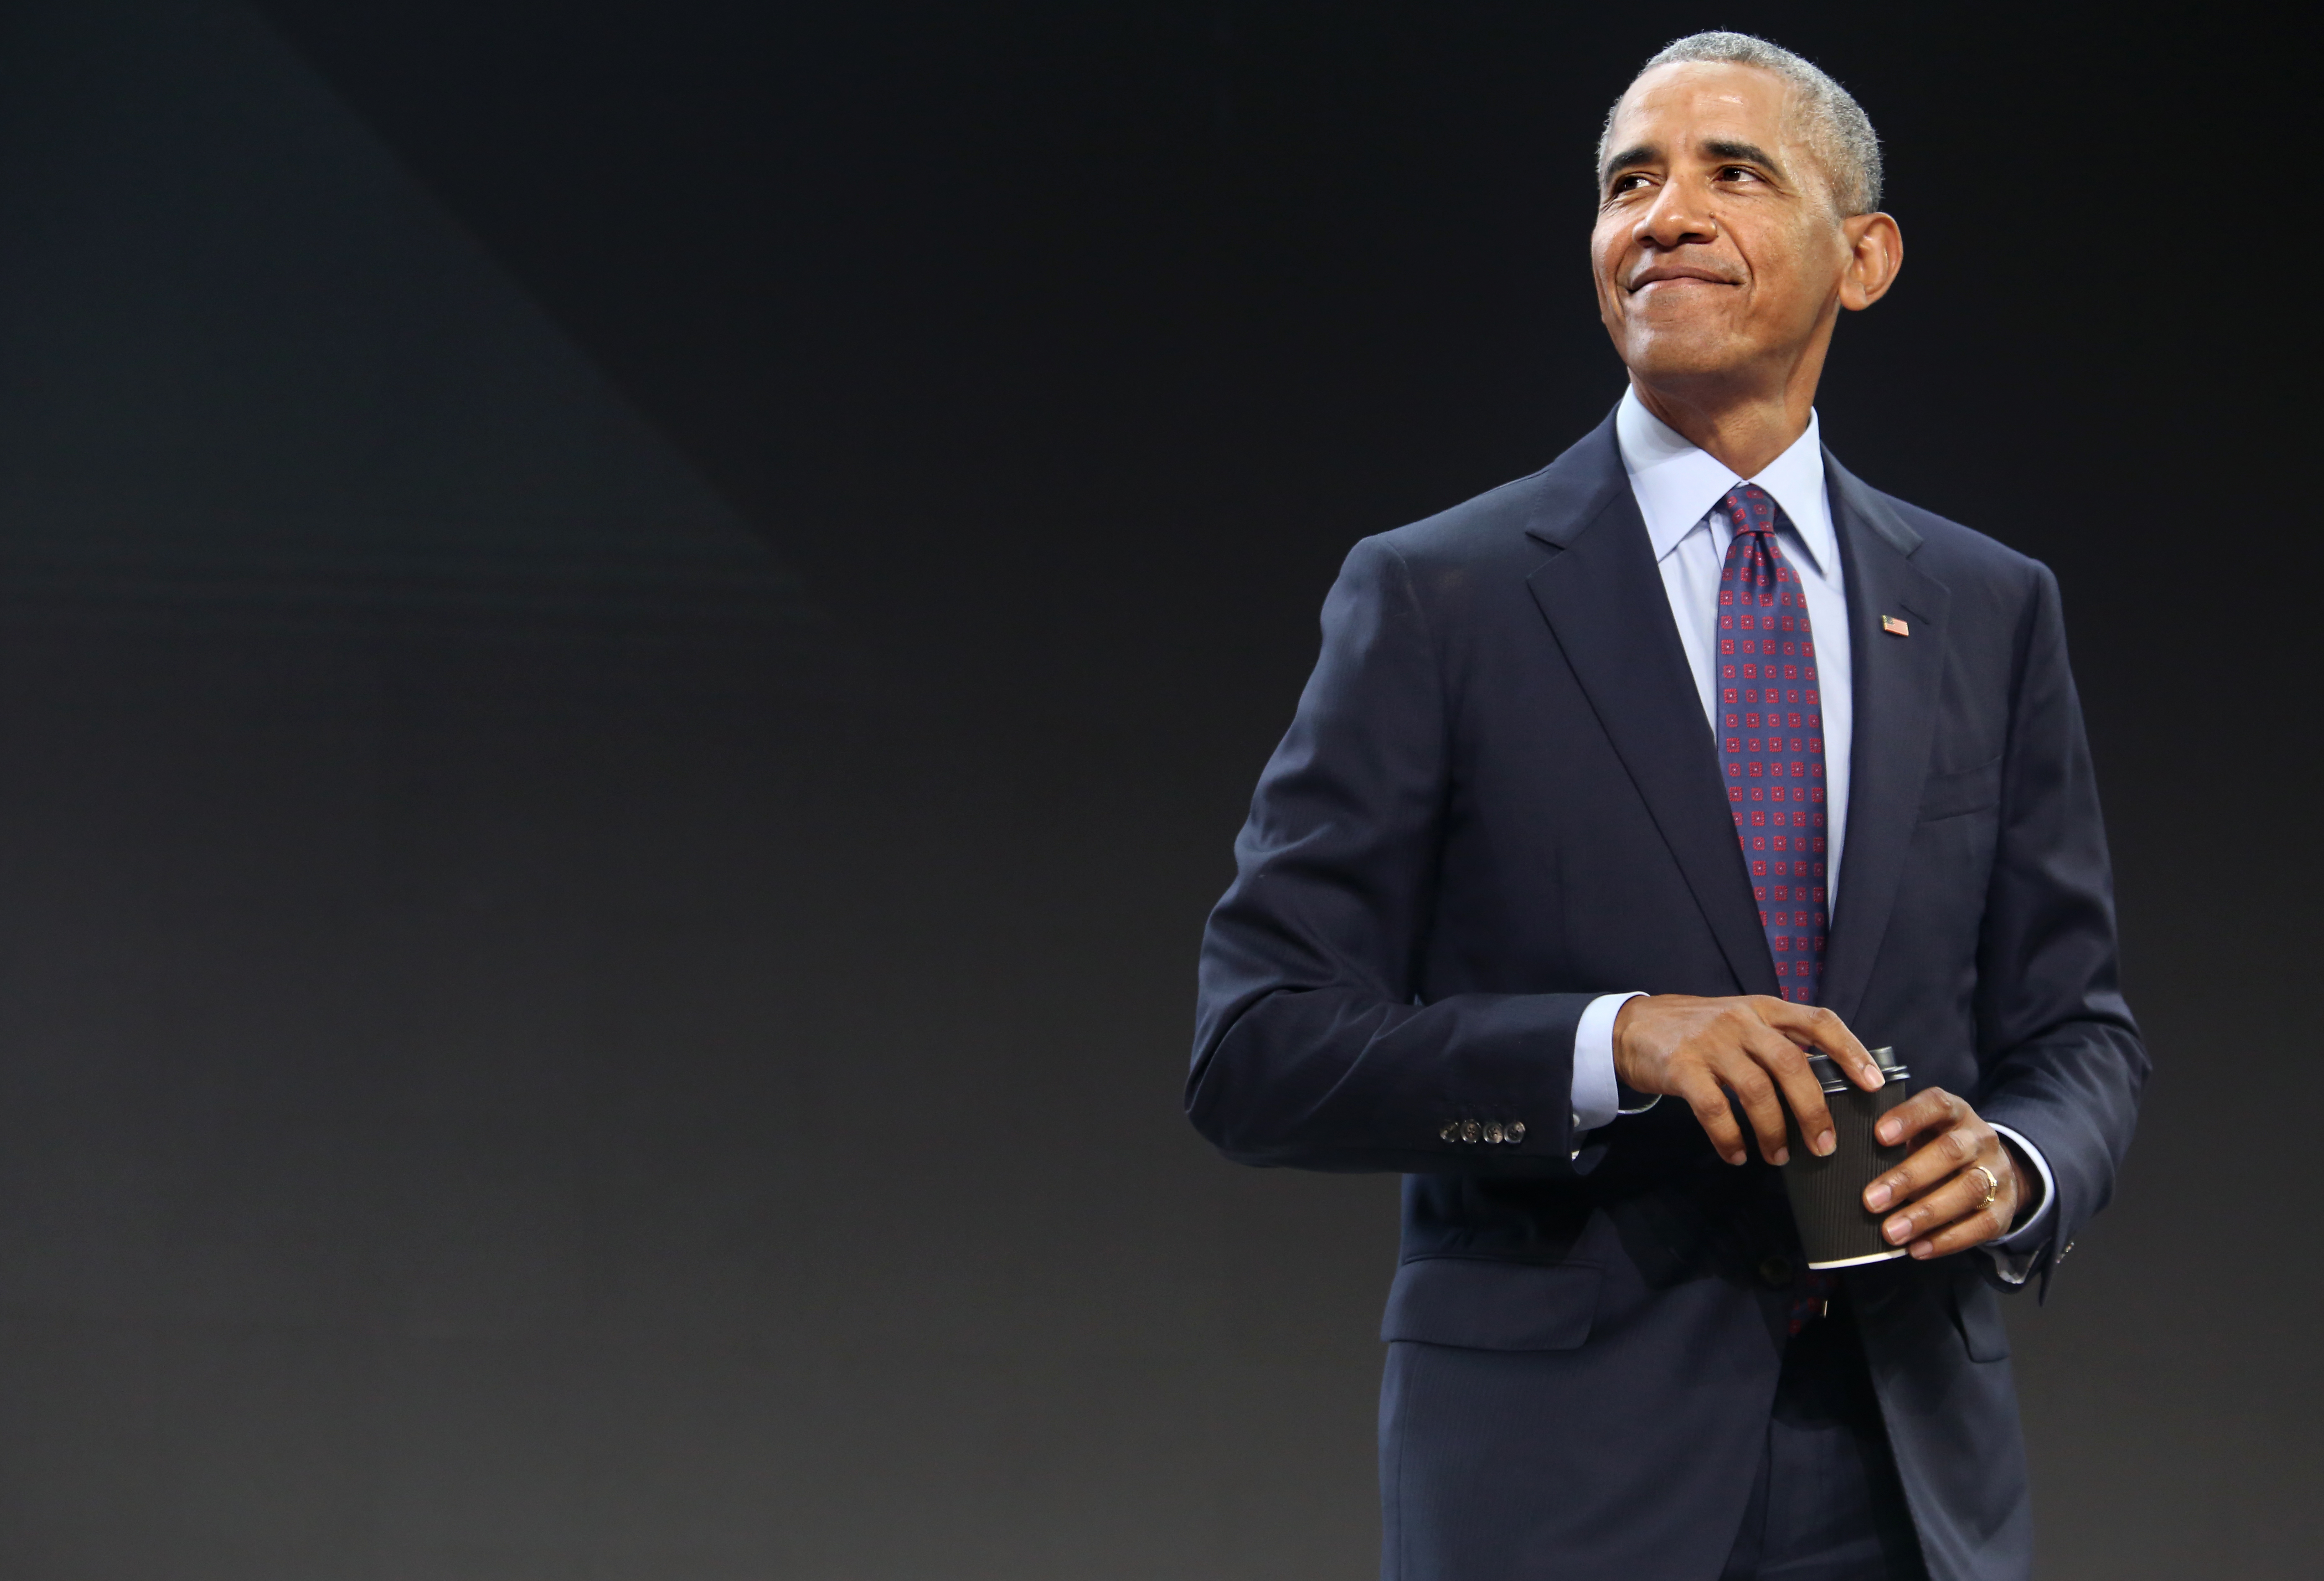 Former President Obama Speaks At The Gates Foundation Inaugural Goalkeepers Event